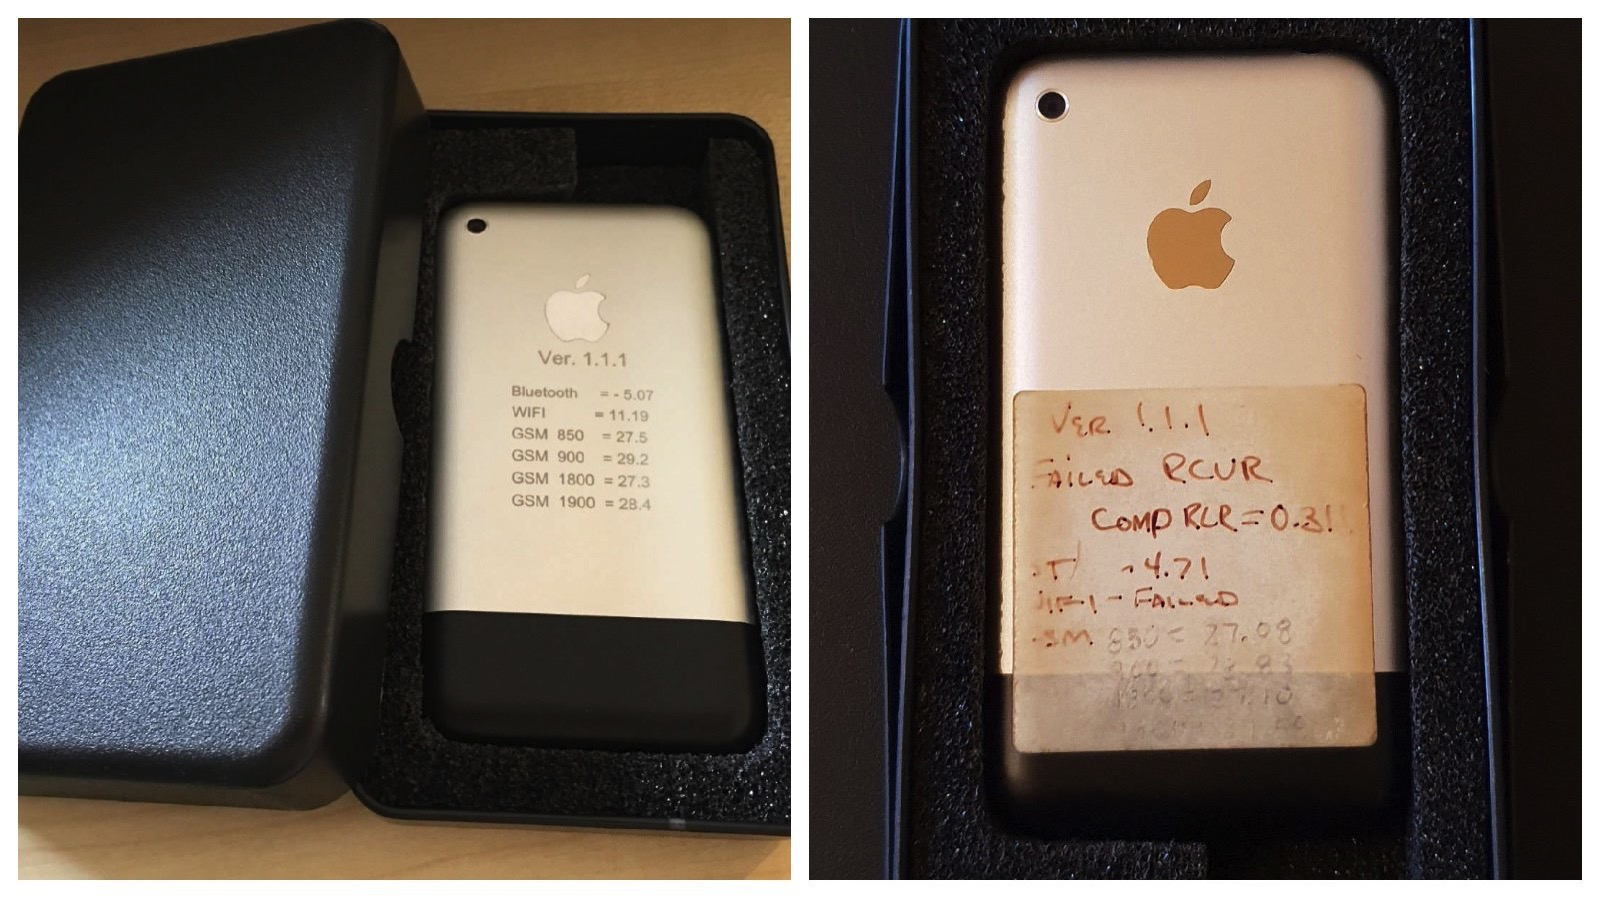 Original iPhone Prototypes on eBay